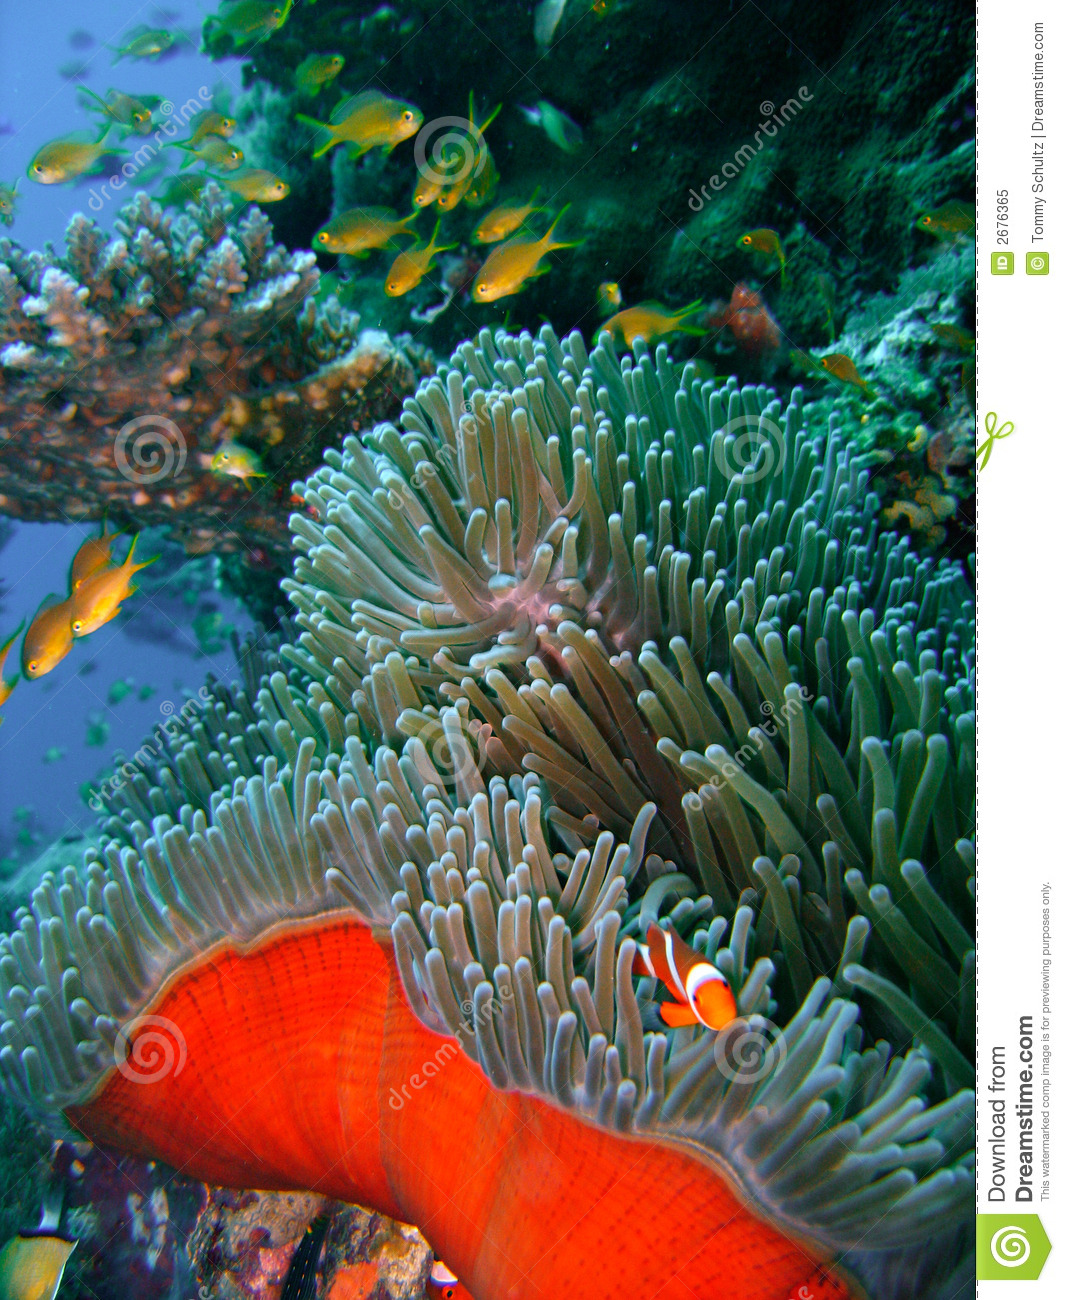 Colorful coral reef fish stock image. Image of caribbean ...